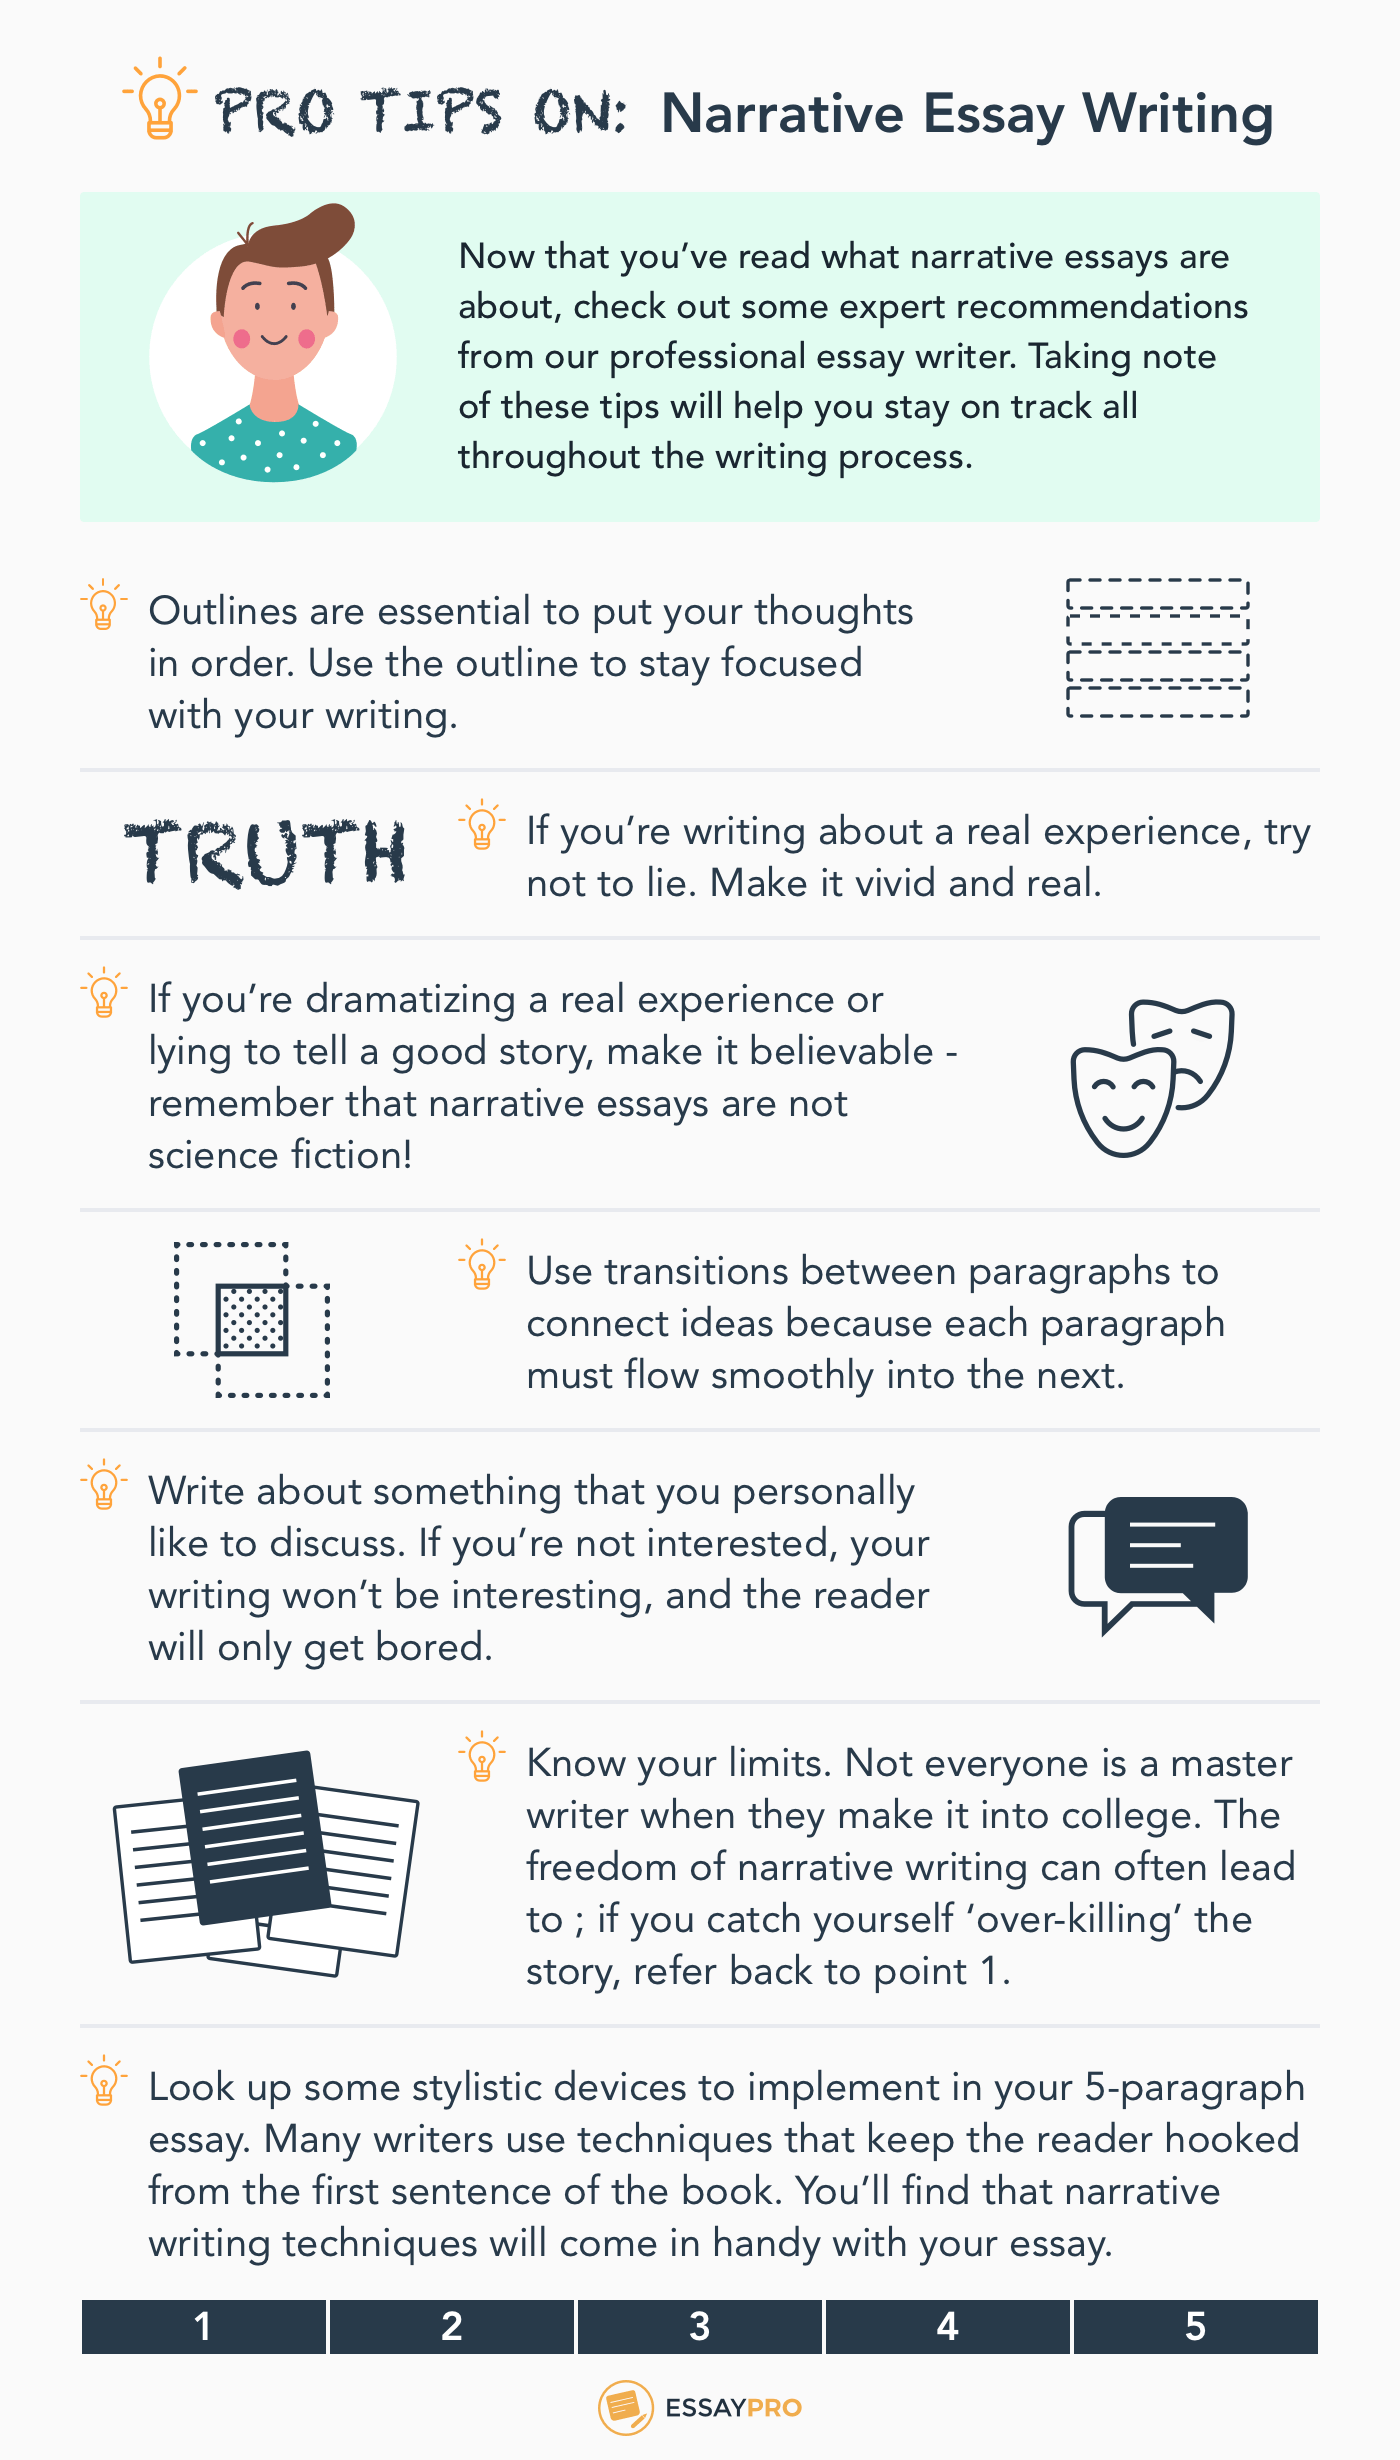 Tips on narrative essay writing